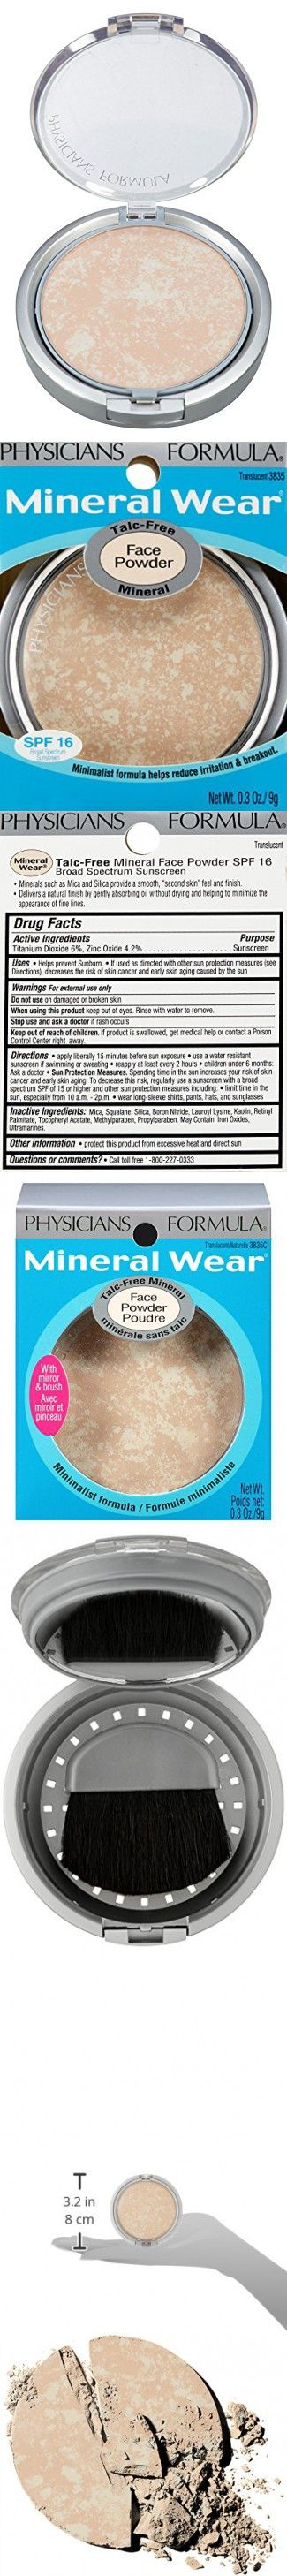 Physicians Formula Mineral Wear Talcfree Mineral Face